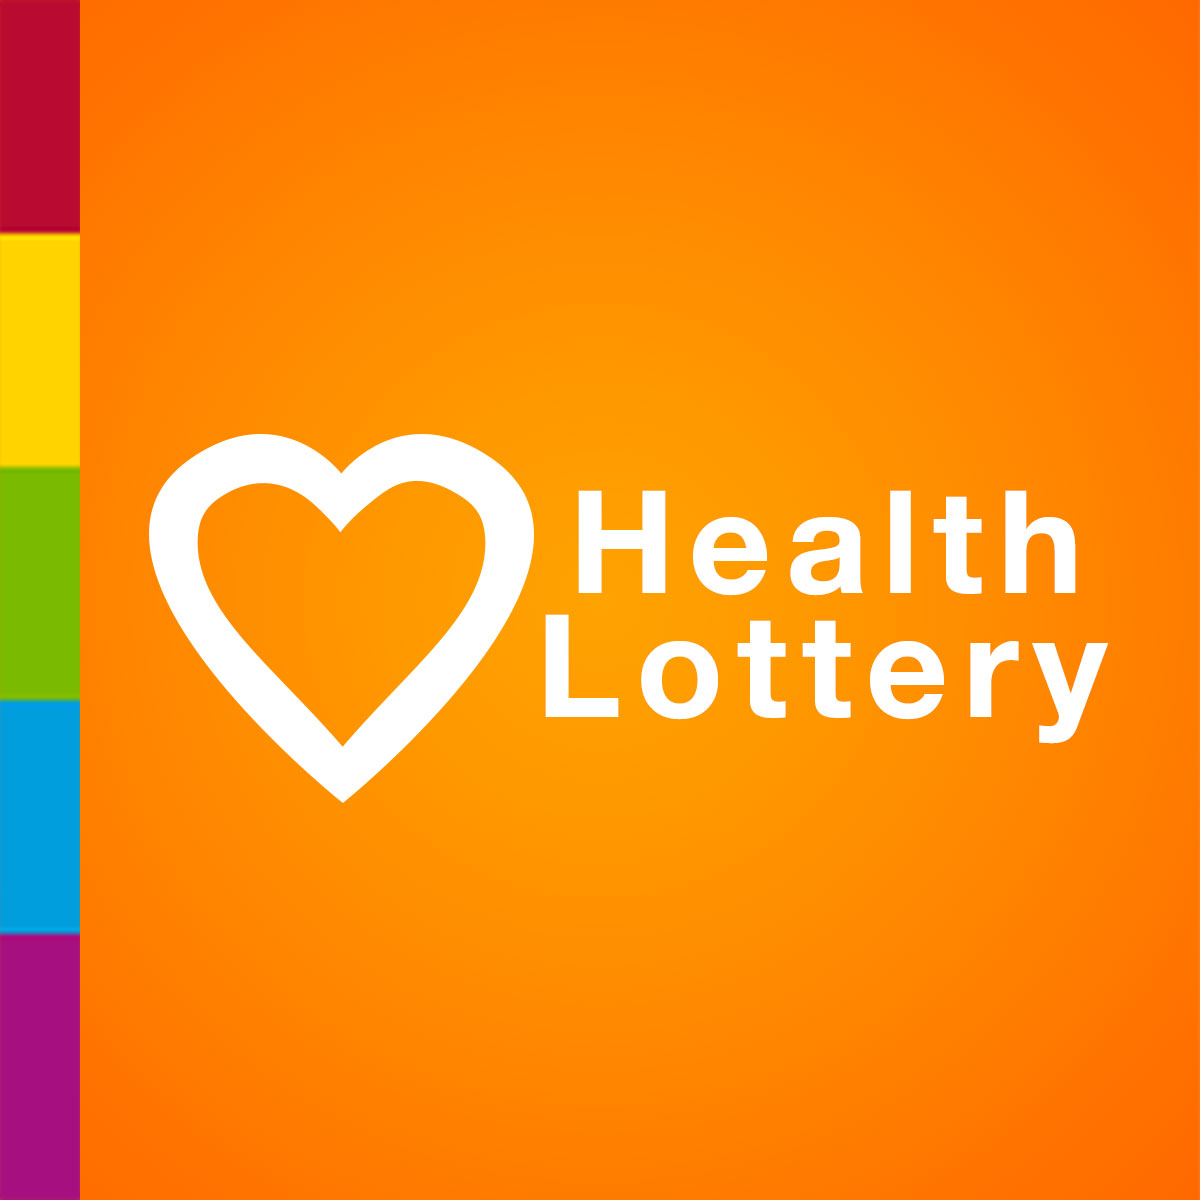 Past Six Months Results for Health Lottery